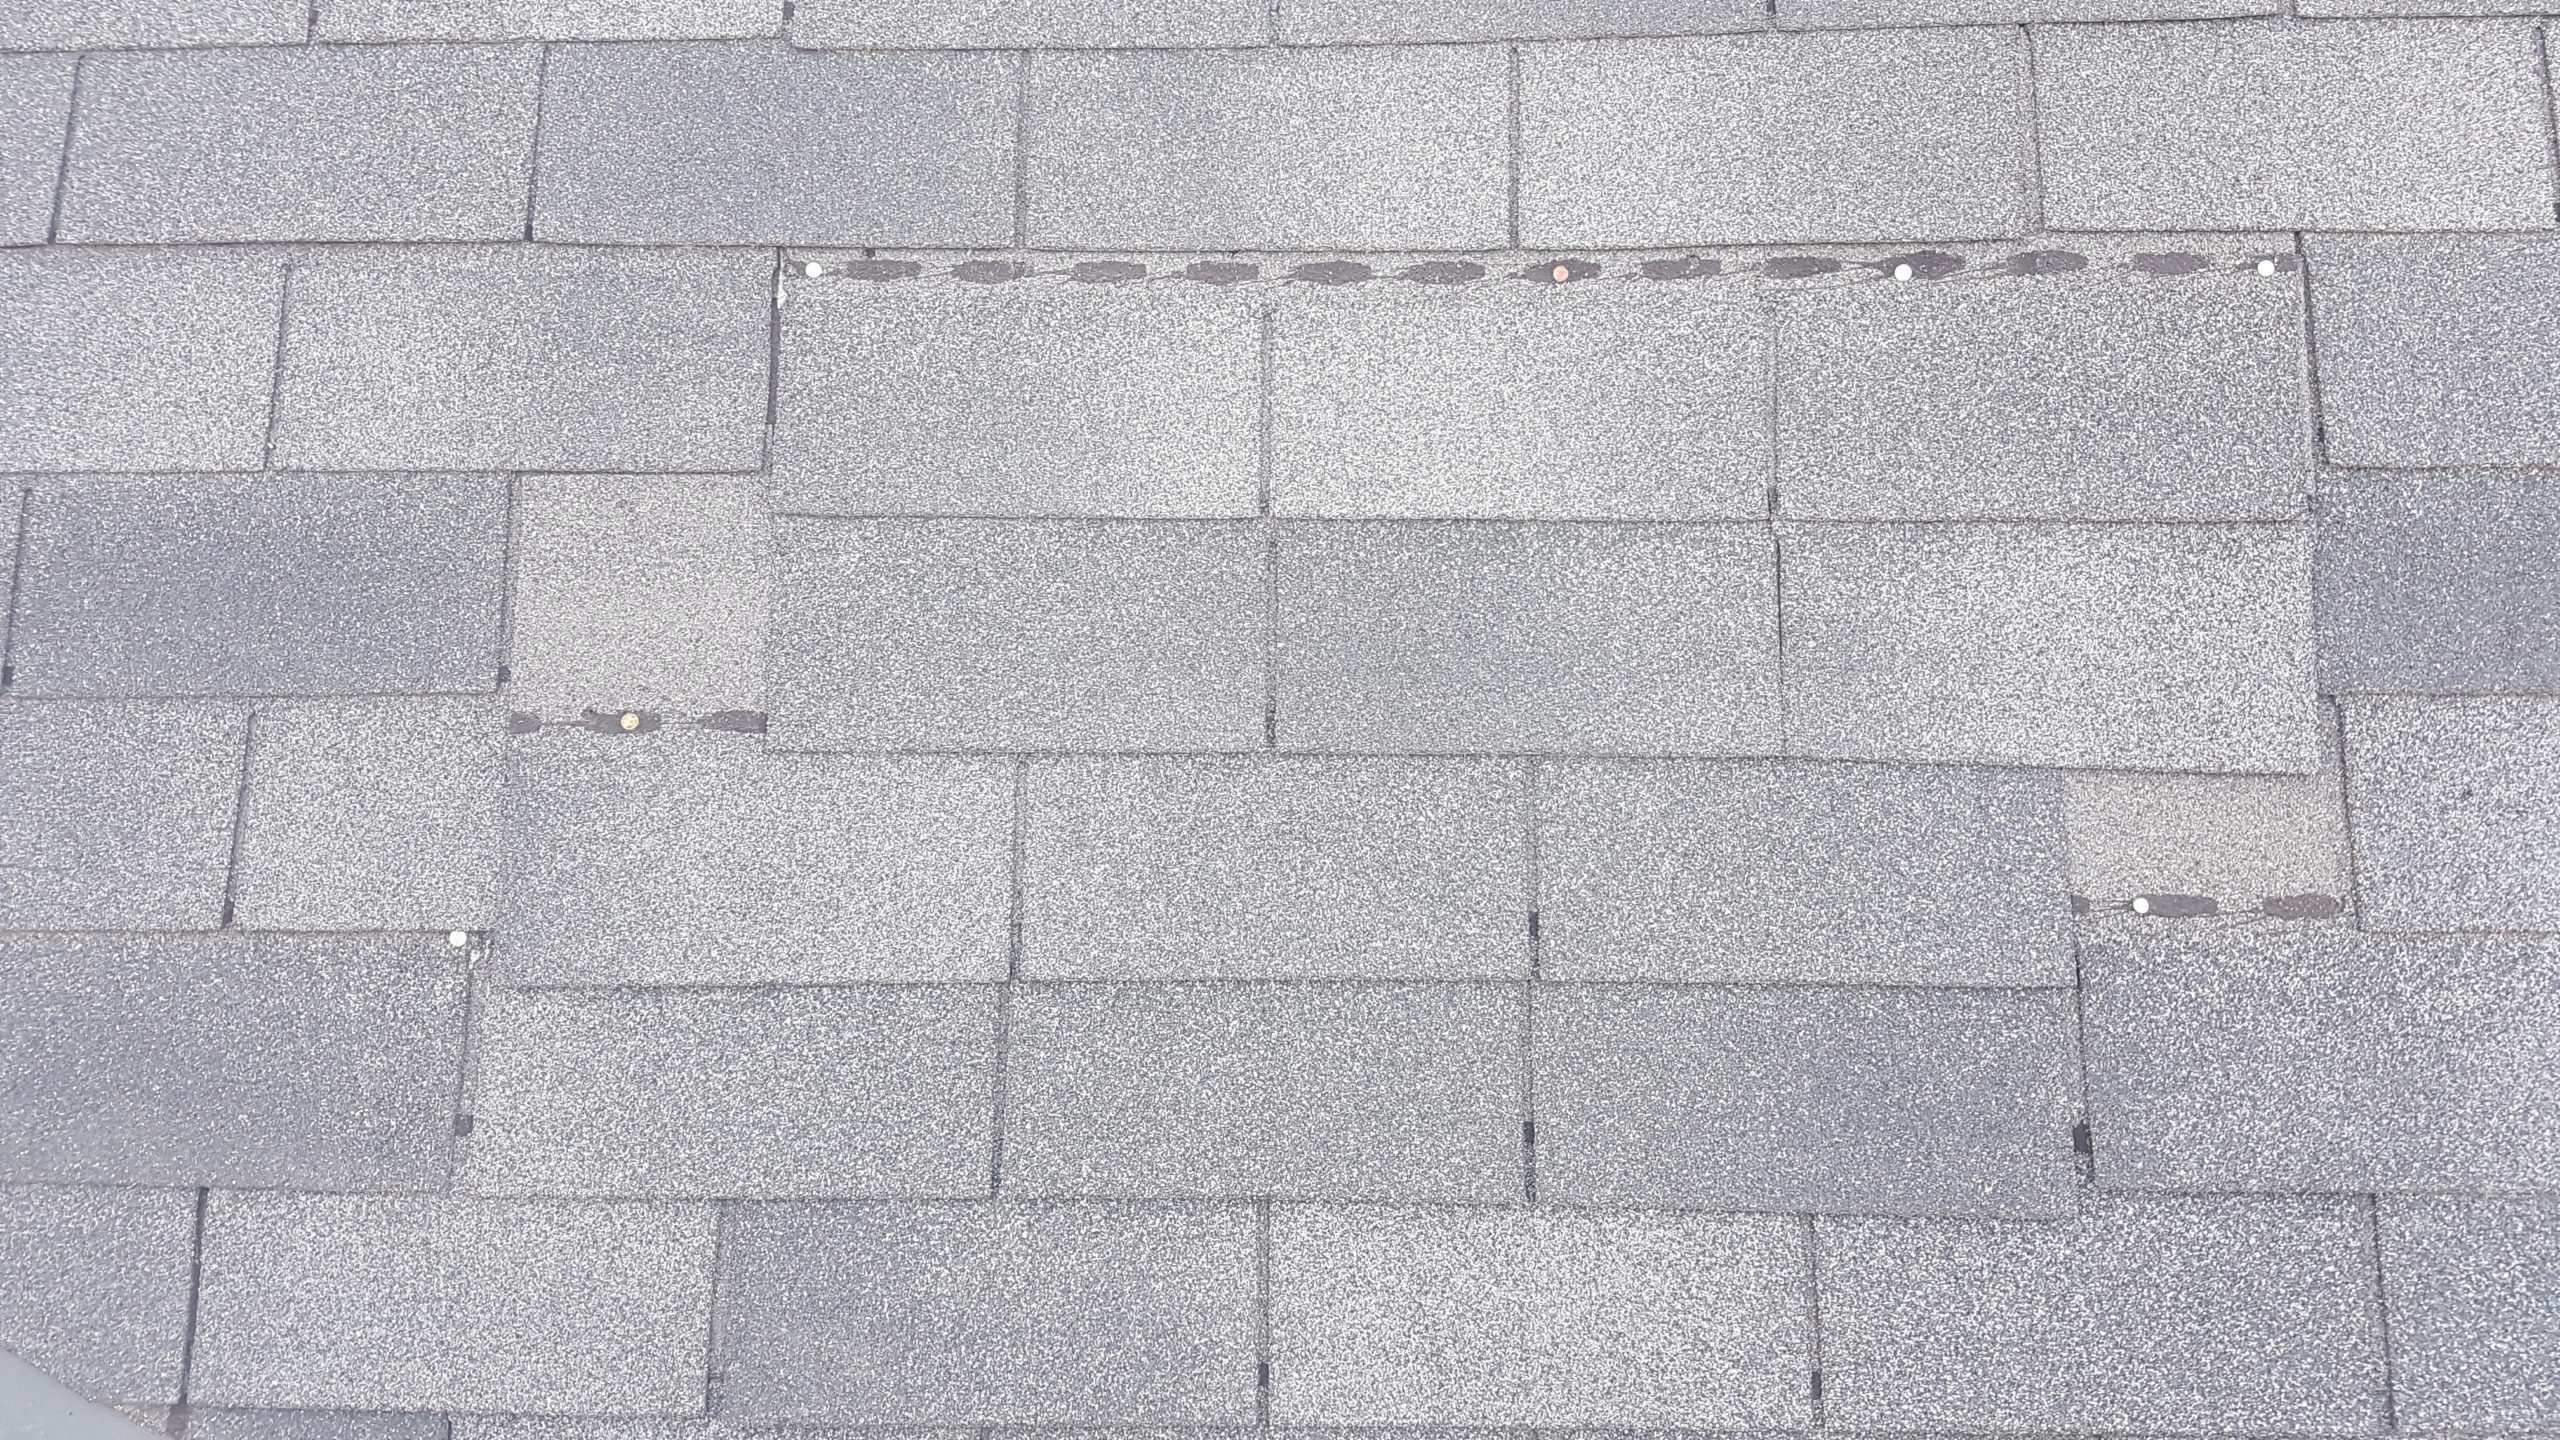 Improperly patched shingles